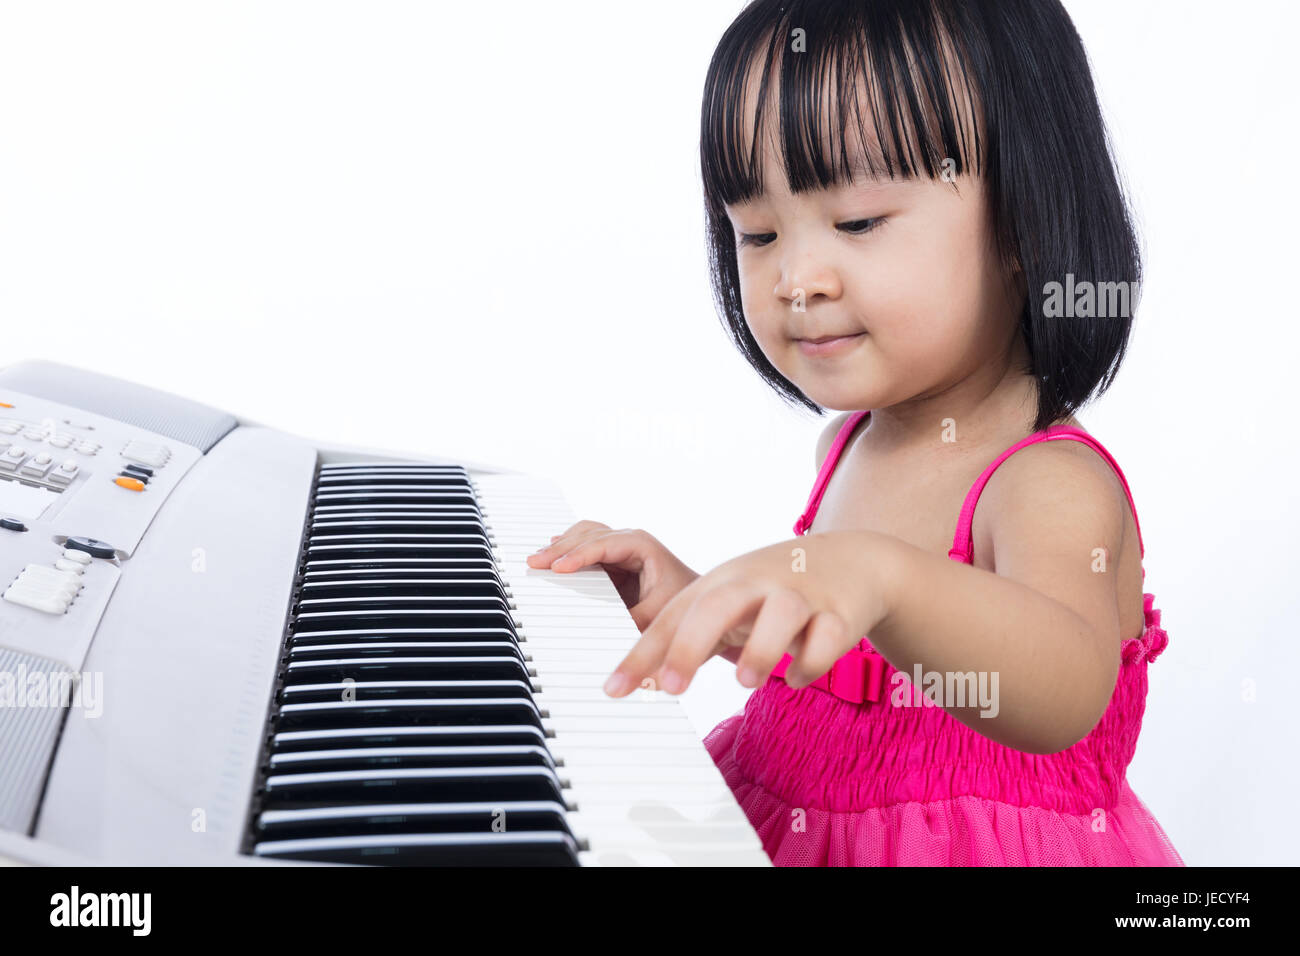 Asian Chinese little girl playing electric piano keyboard in the living room at home. - Stock Image